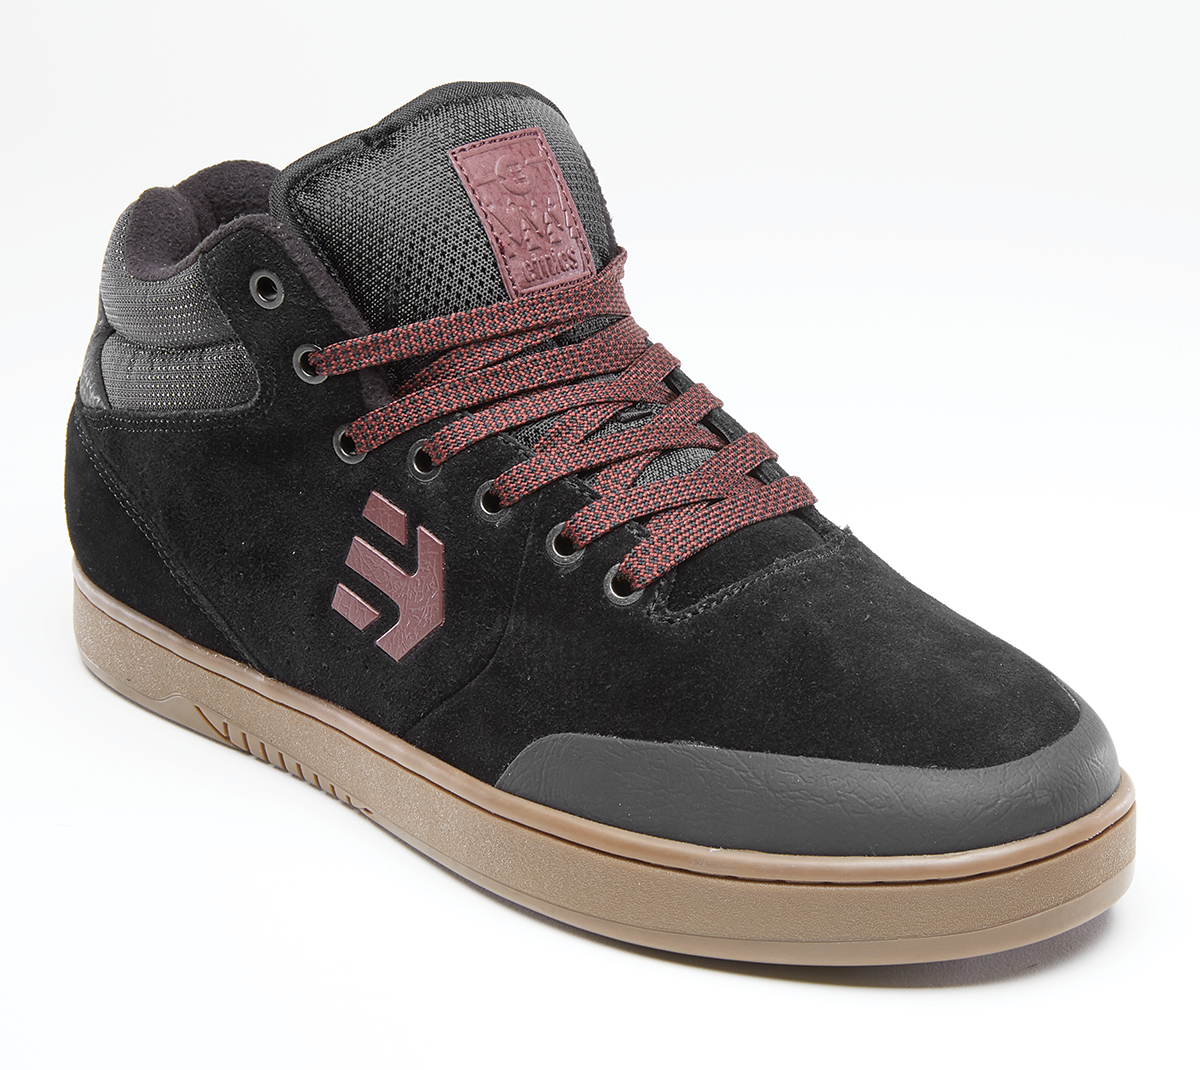 MARANA MTW BLACK/RED/GUM ETNIES